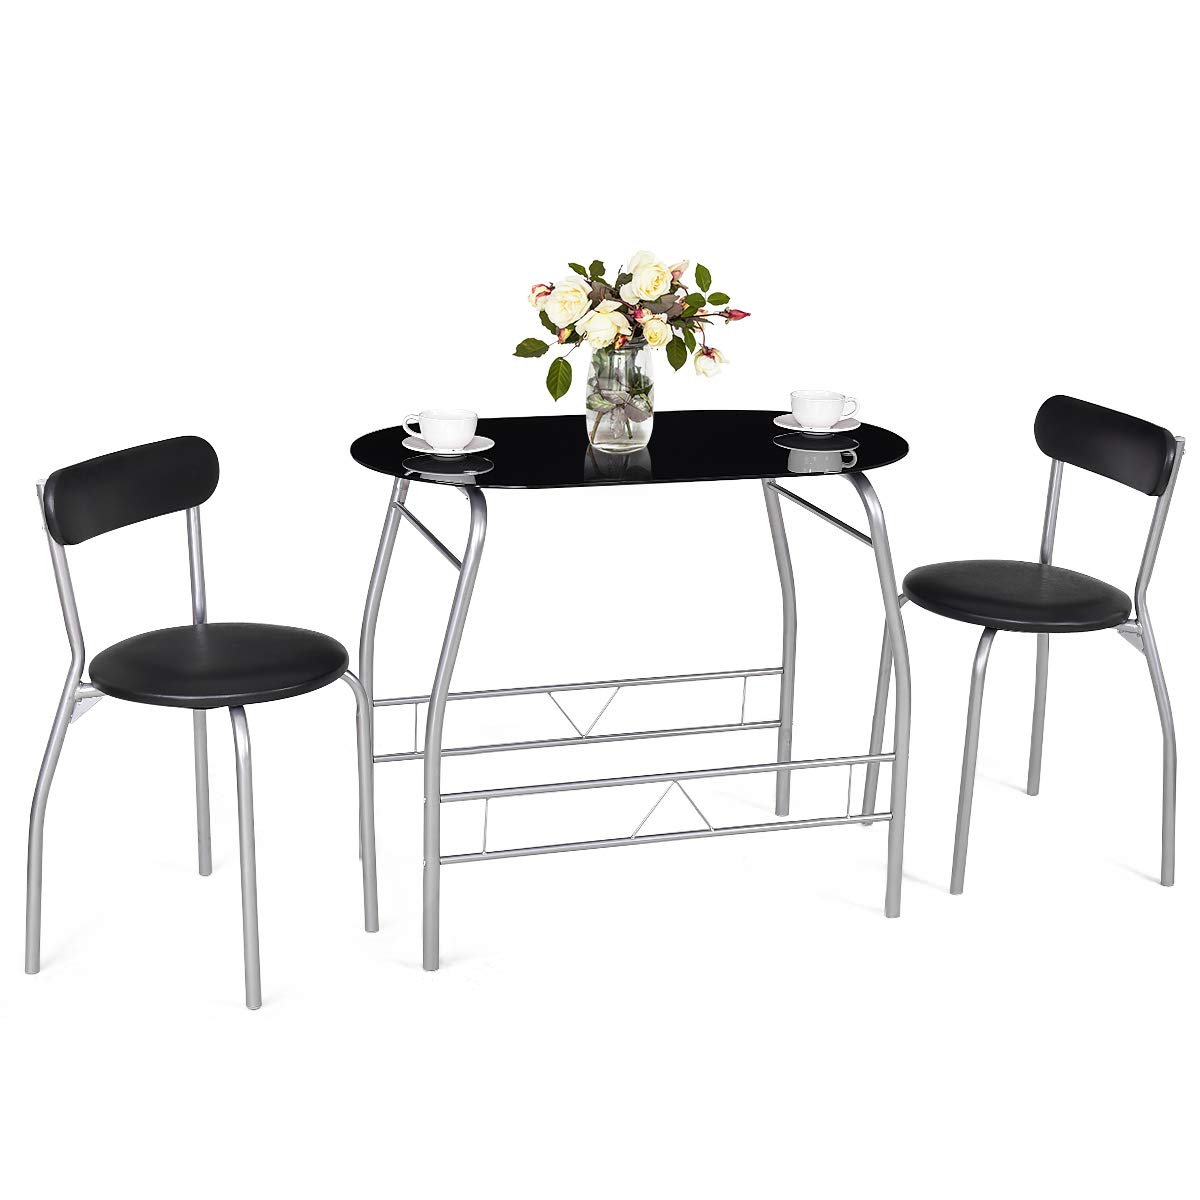 Trendy 3 Pieces Dining Tables And Chair Set With Tangkula 3 Piece Dining Set Modern Metal Frame Glass Top Table And 2 Chairs  Set Home Kitchen Bistro Pub Breakfast Furniture, Black And Silver (Gallery 24 of 30)